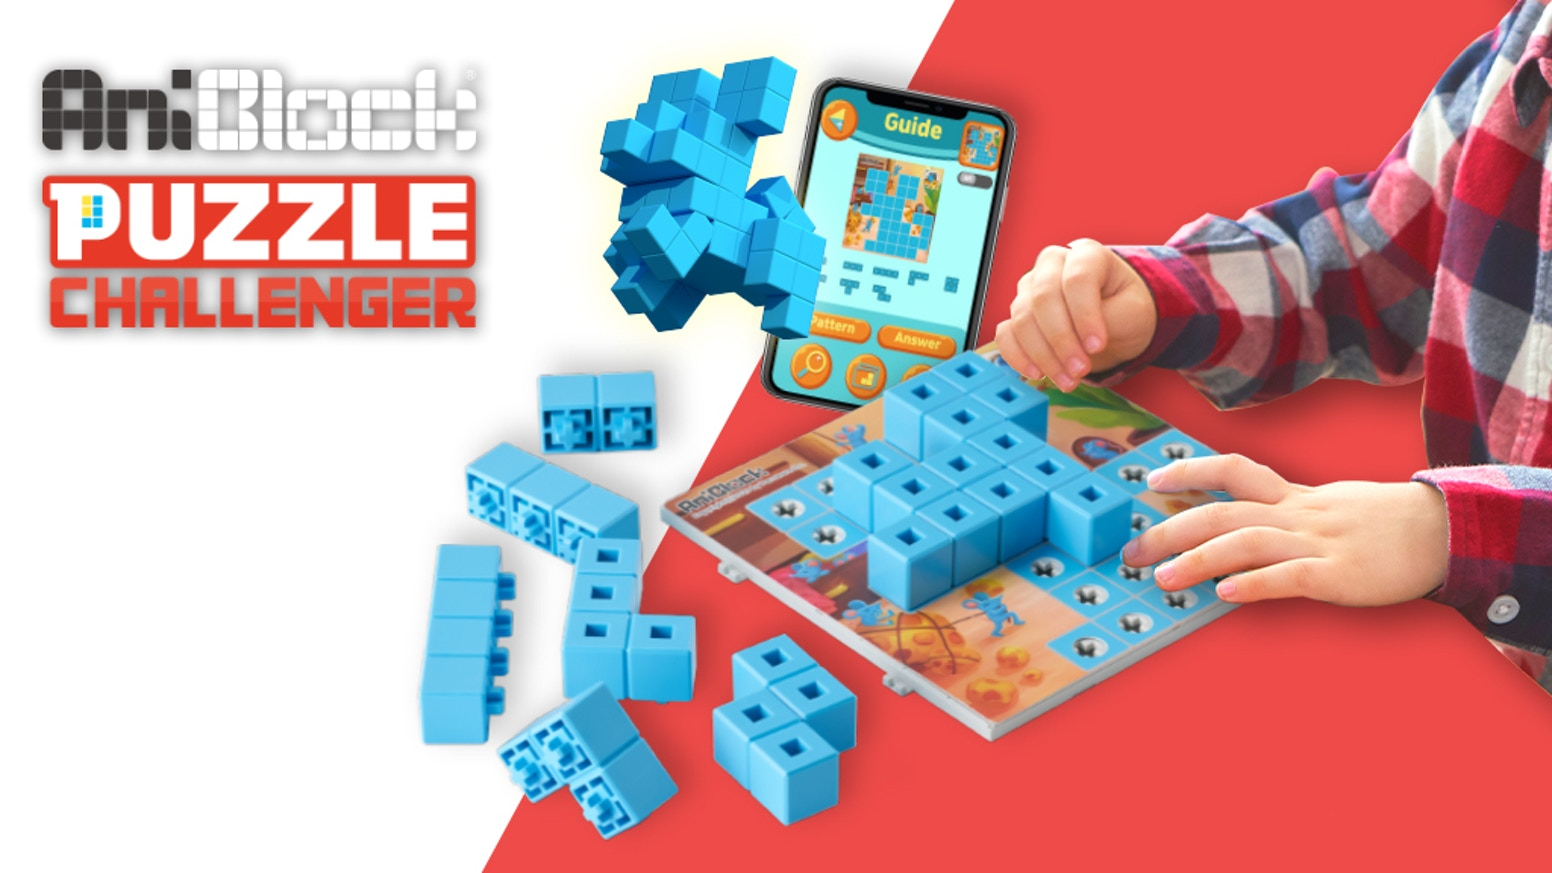 AniBlock is a STEM toy that allows children to solve complex multisolution puzzles in order to develop practical problem-solving skills